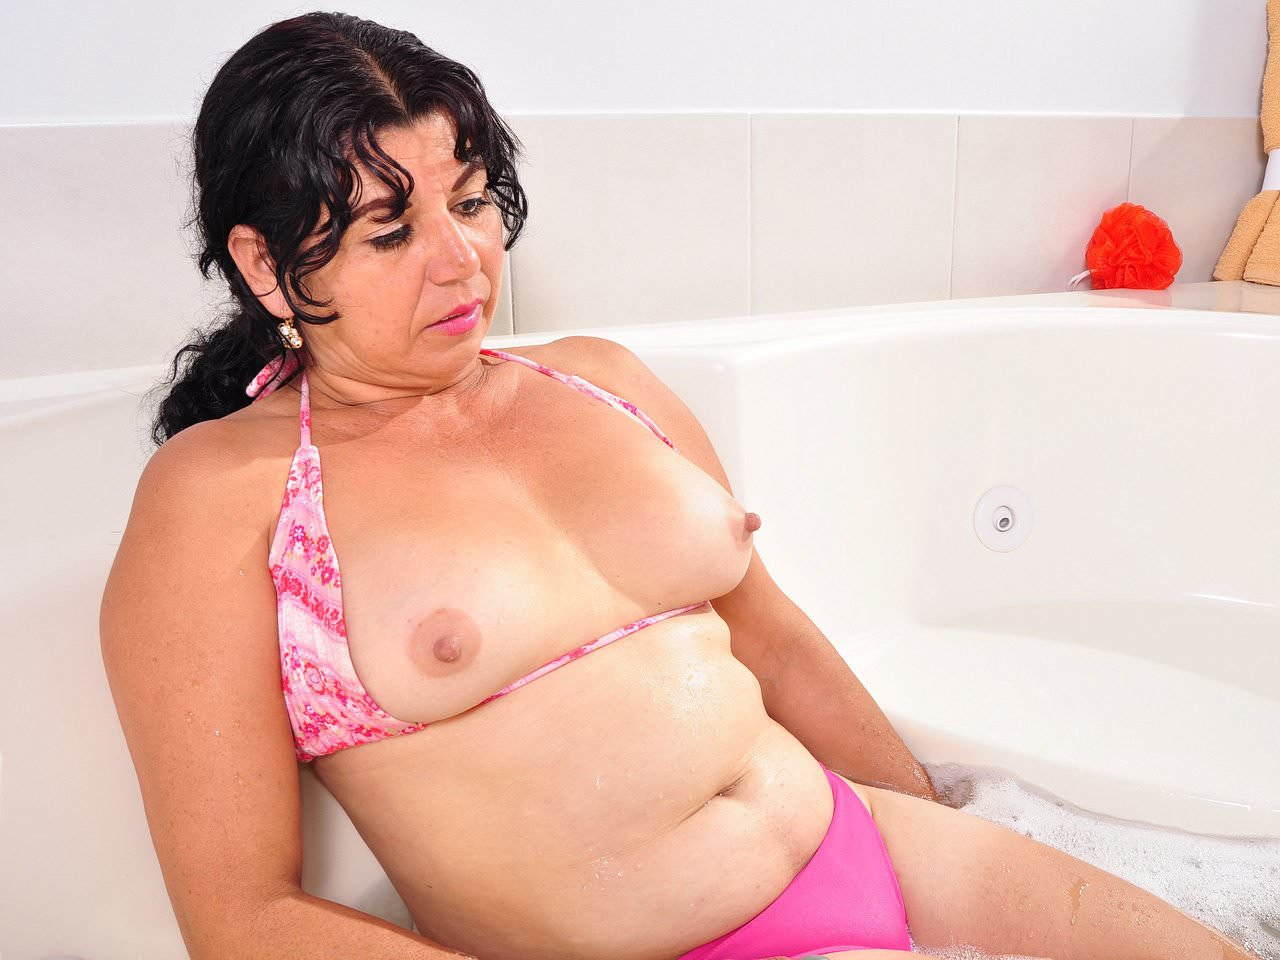 Latina milf lucia gets overwhelmed by lust